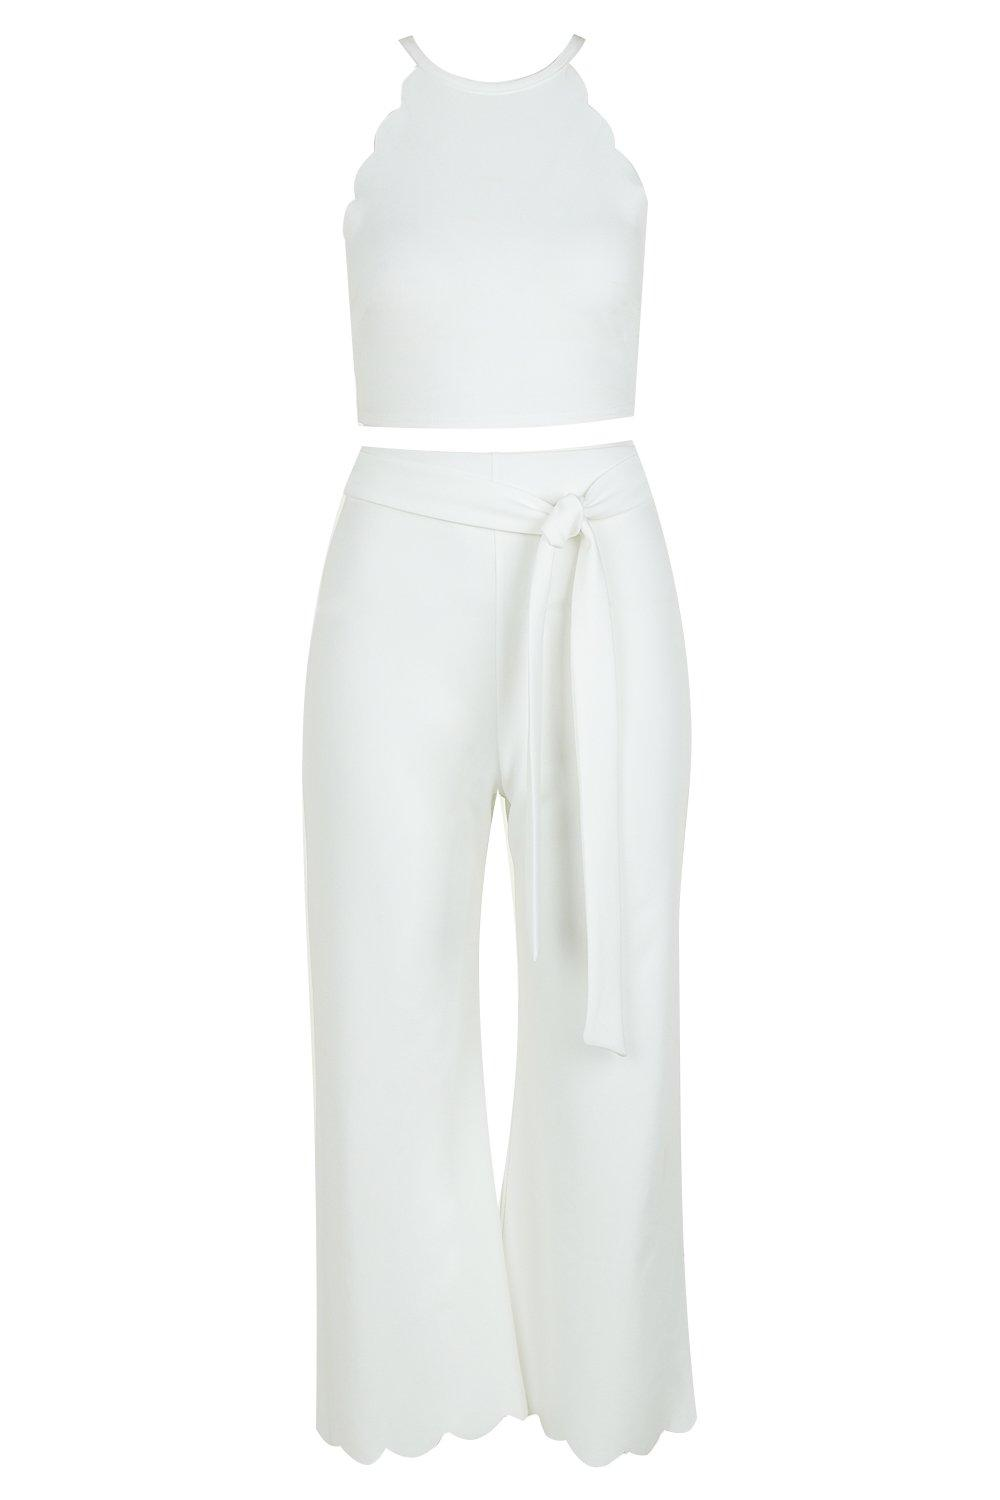 Co ord Top Scallop Culotte Hem amp; white xvqI4xOPw